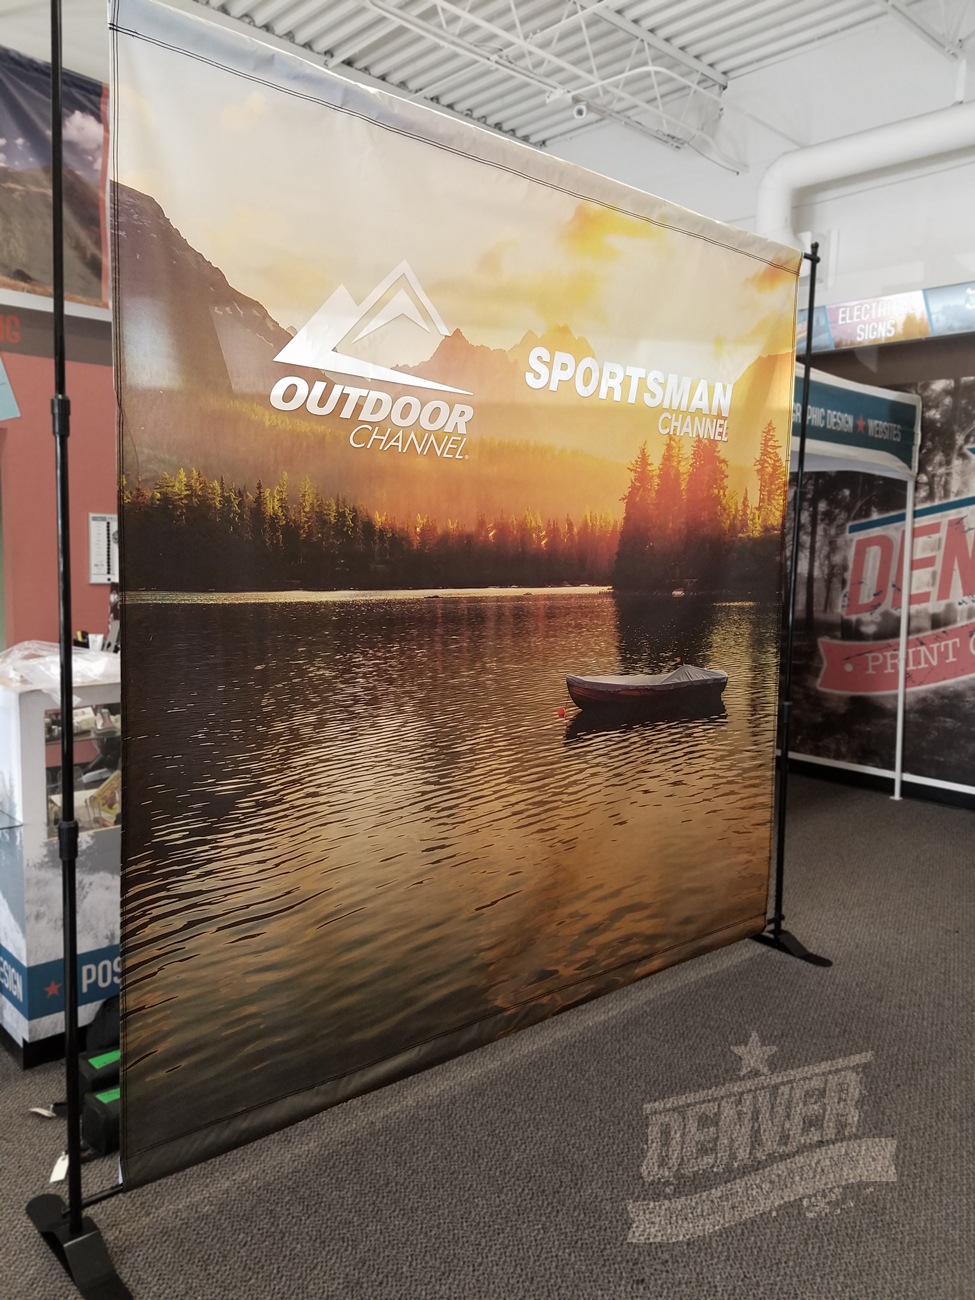 Outdoor Channel step & repeat banner